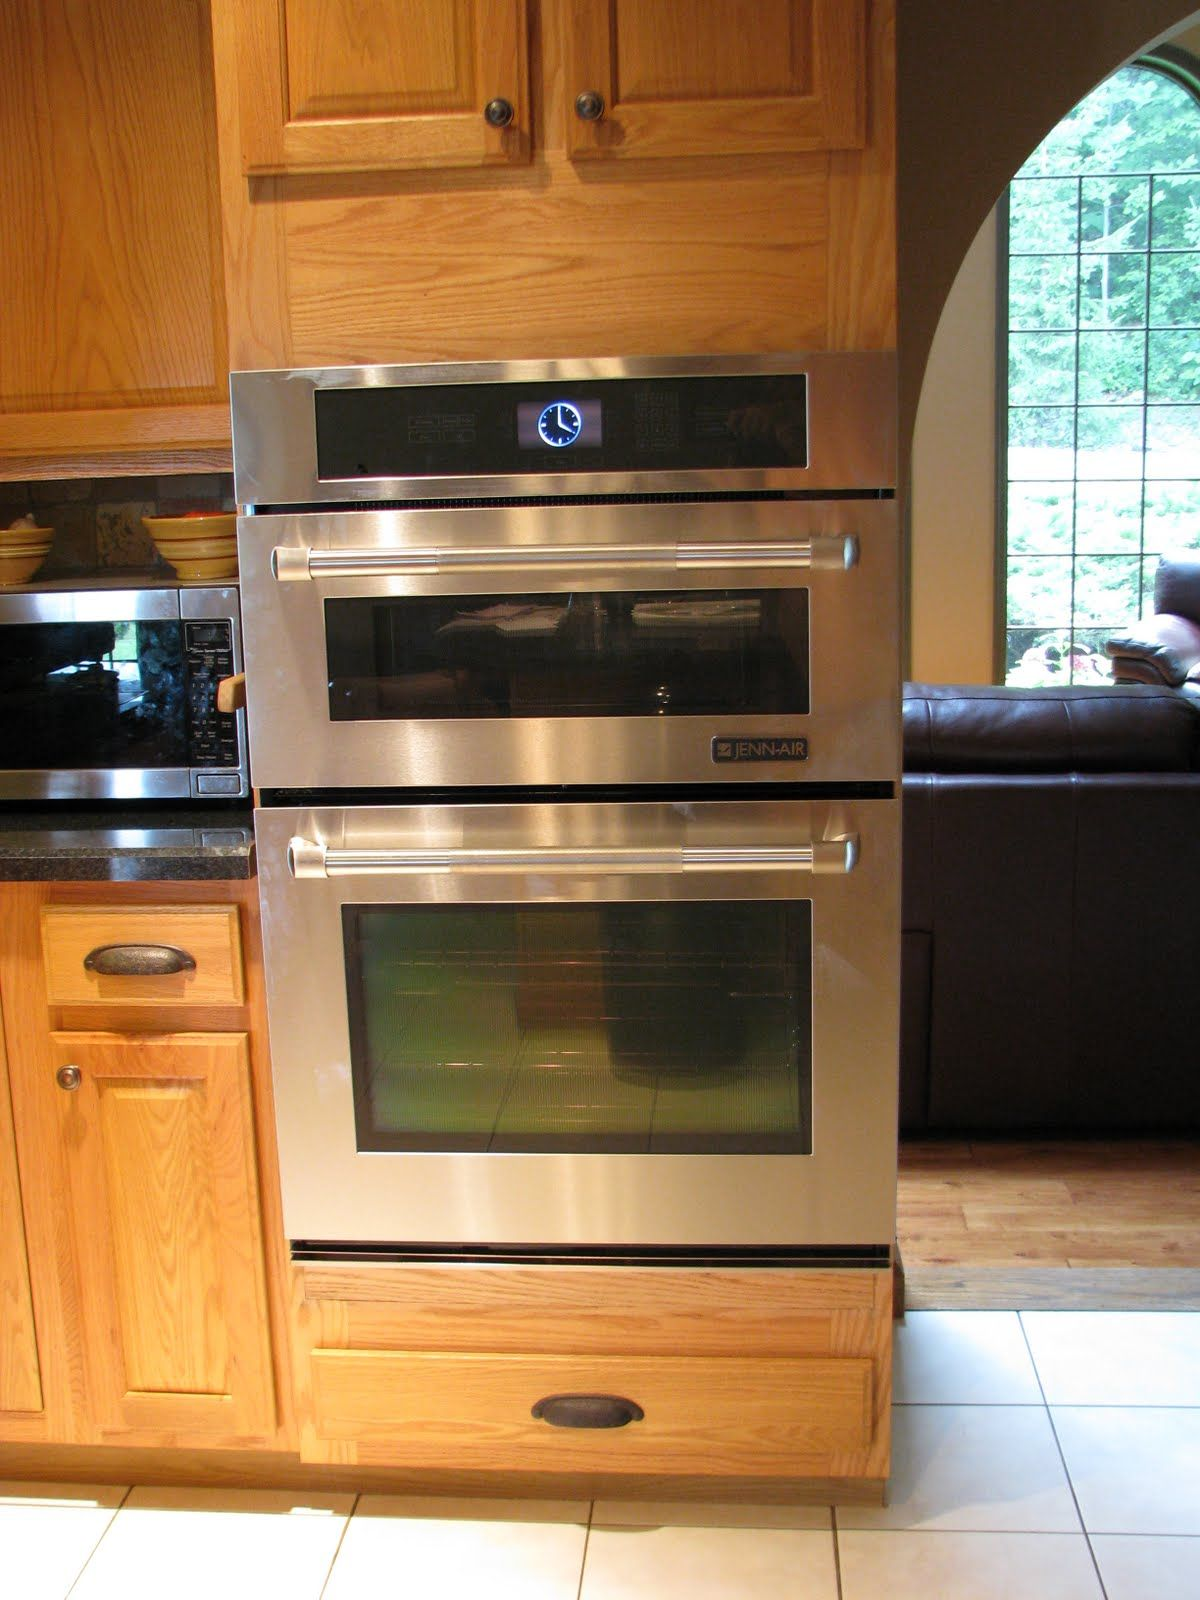 Double Wall Oven Like The Smaller Oven Too Wall Oven Oven